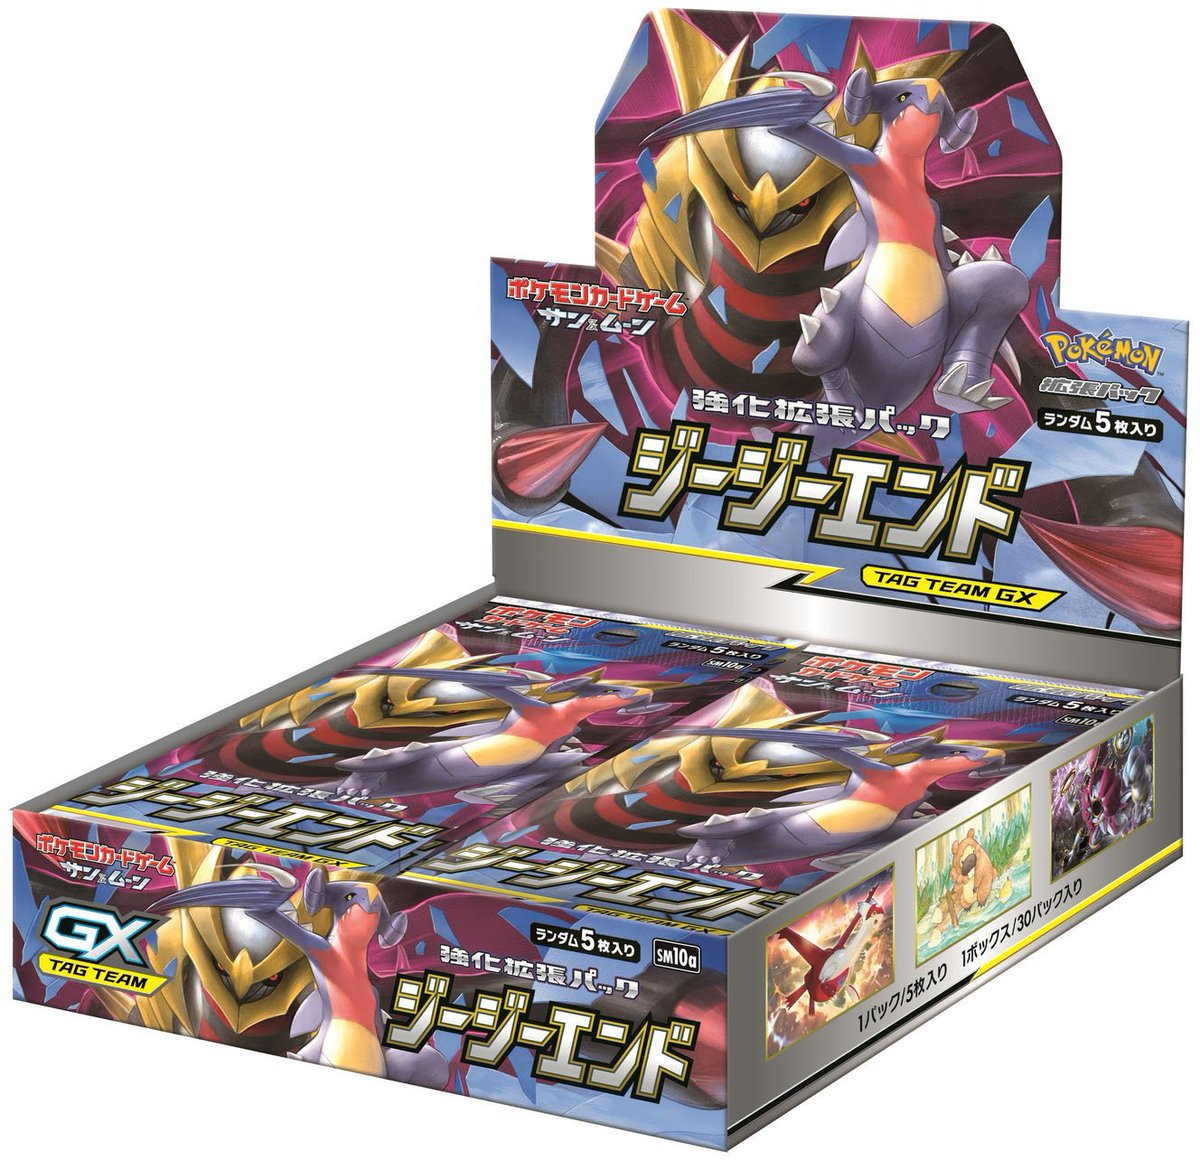 tweet-The promo card for purchasing a booster box of 'GG End' will be Chandelure. No image is available yet. https://t.co/ASkDbNIga2